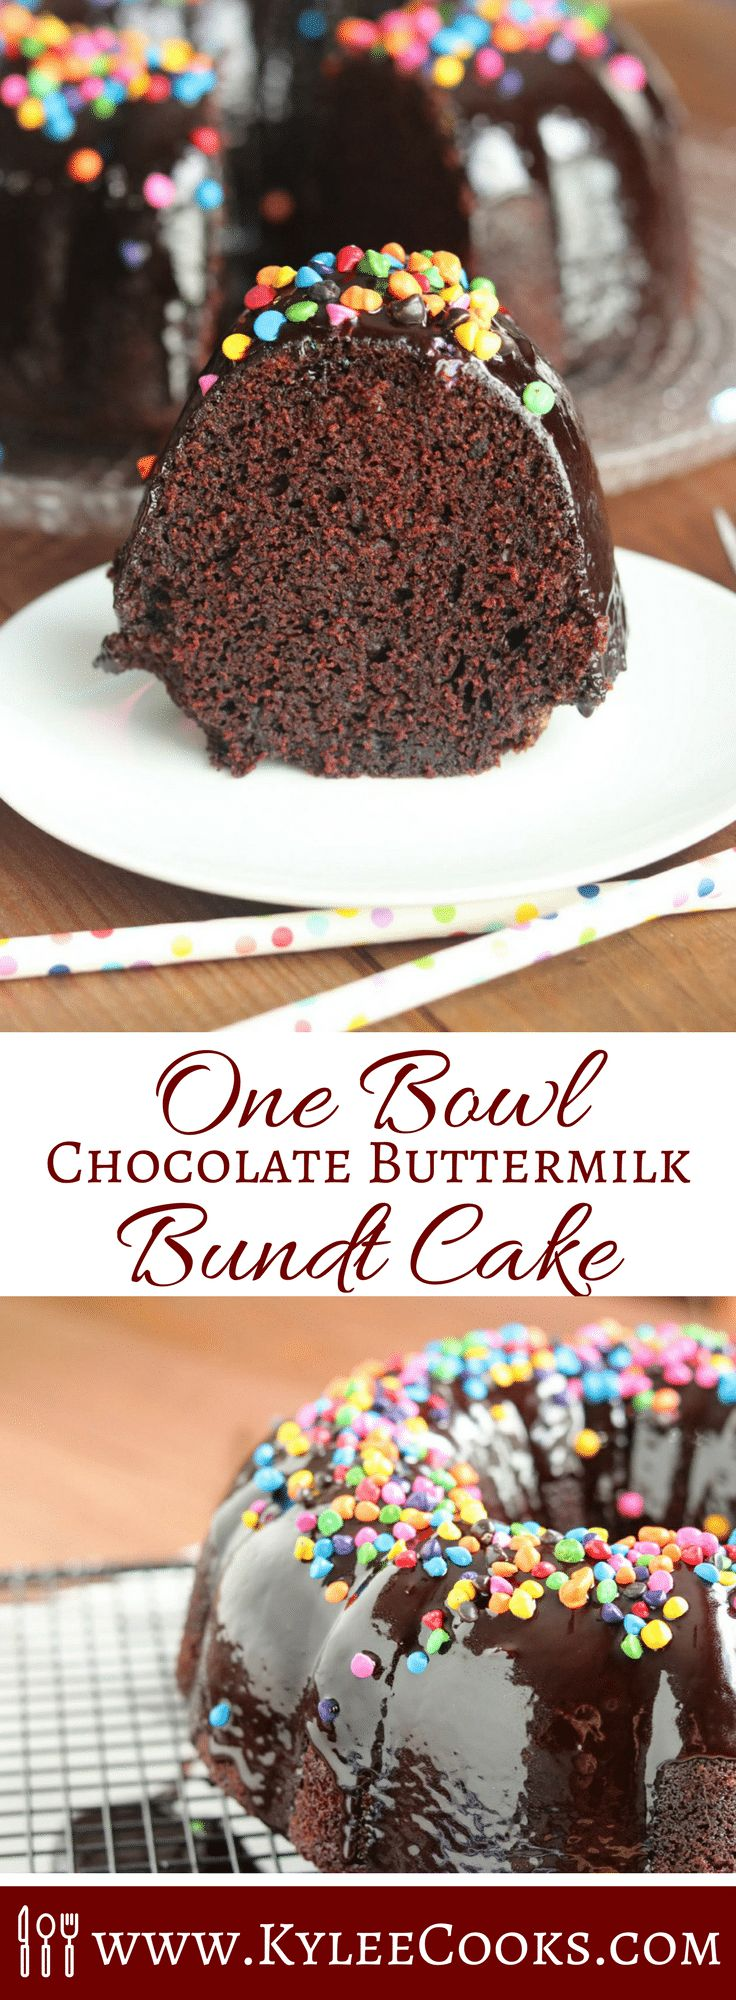 A one-bowl wonder, this easy but rich and decadent Chocolate Buttermilk Bundt Cake will satisfy chocolate lovers the world over! via @kyleecooks